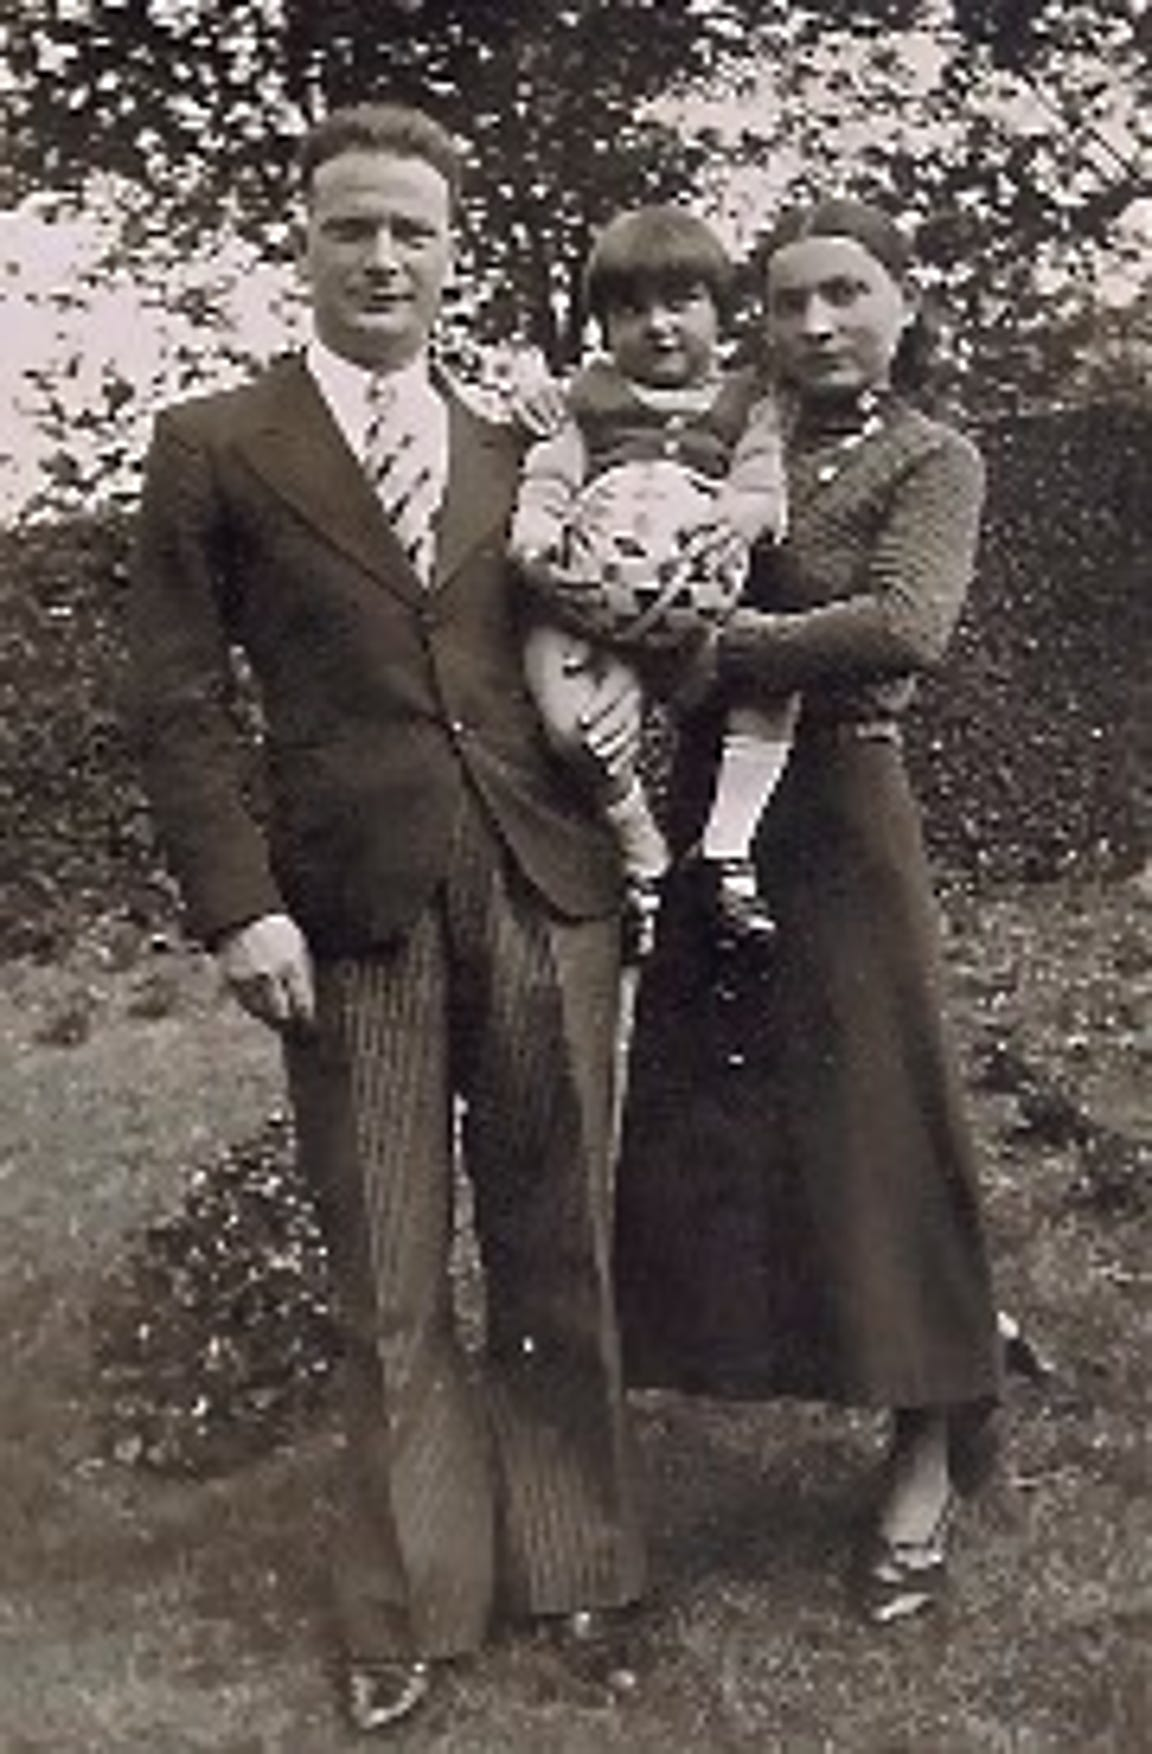 A photo of Srul and Chana Malmed holding their then young daughter, Rachel Epstein. The photo was taken in 1936.